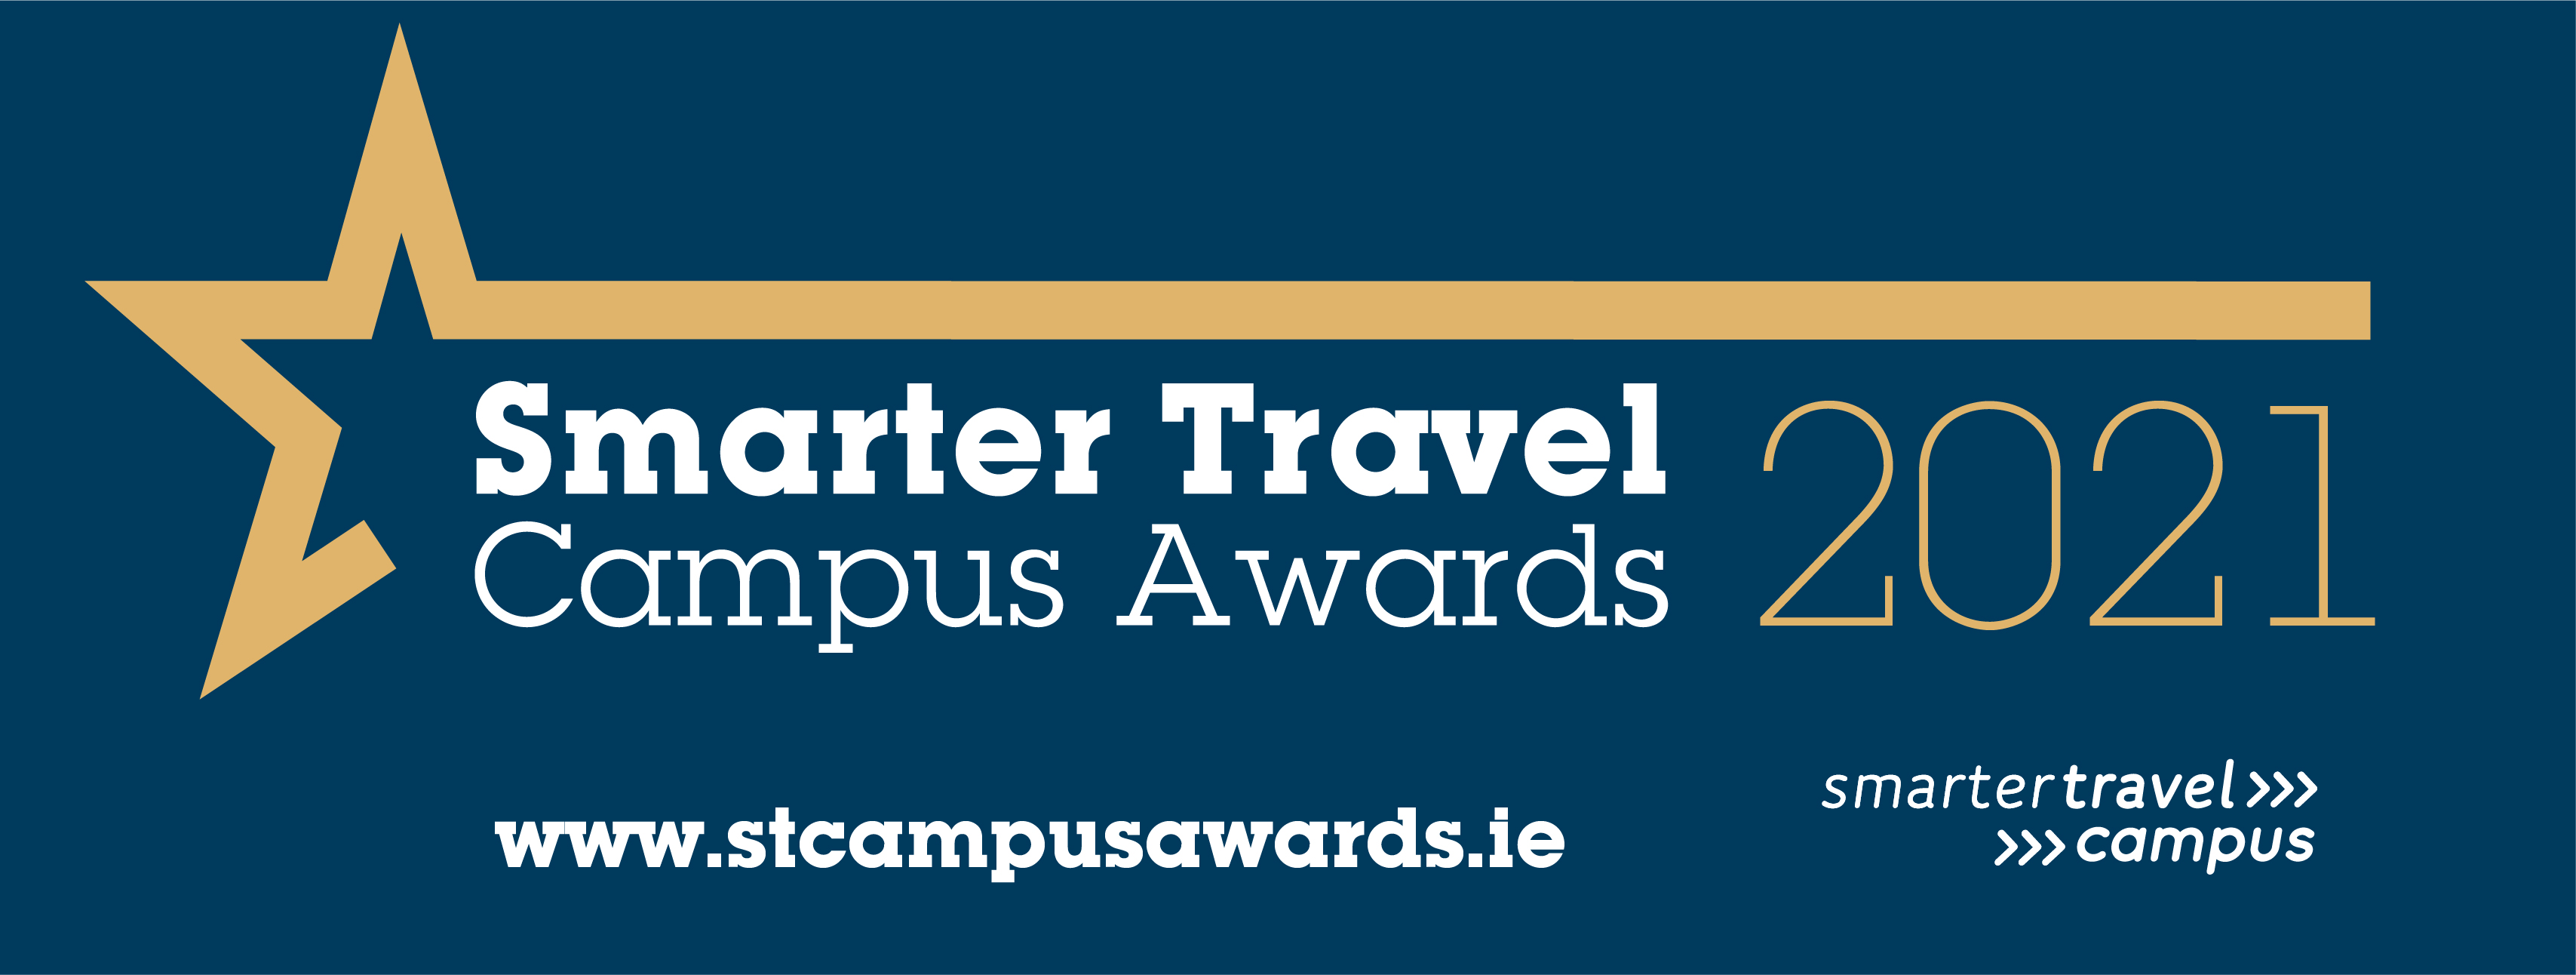 """For more information see our website <a href=""""https://www.nationaltransport.ie/smarter-travel-workplaces/smarter-travel-campus/smarter-travel-campus-awards-2020/"""" rel=""""nofollow"""" target=""""_blank"""">www.stcampusawards.ie</a>"""